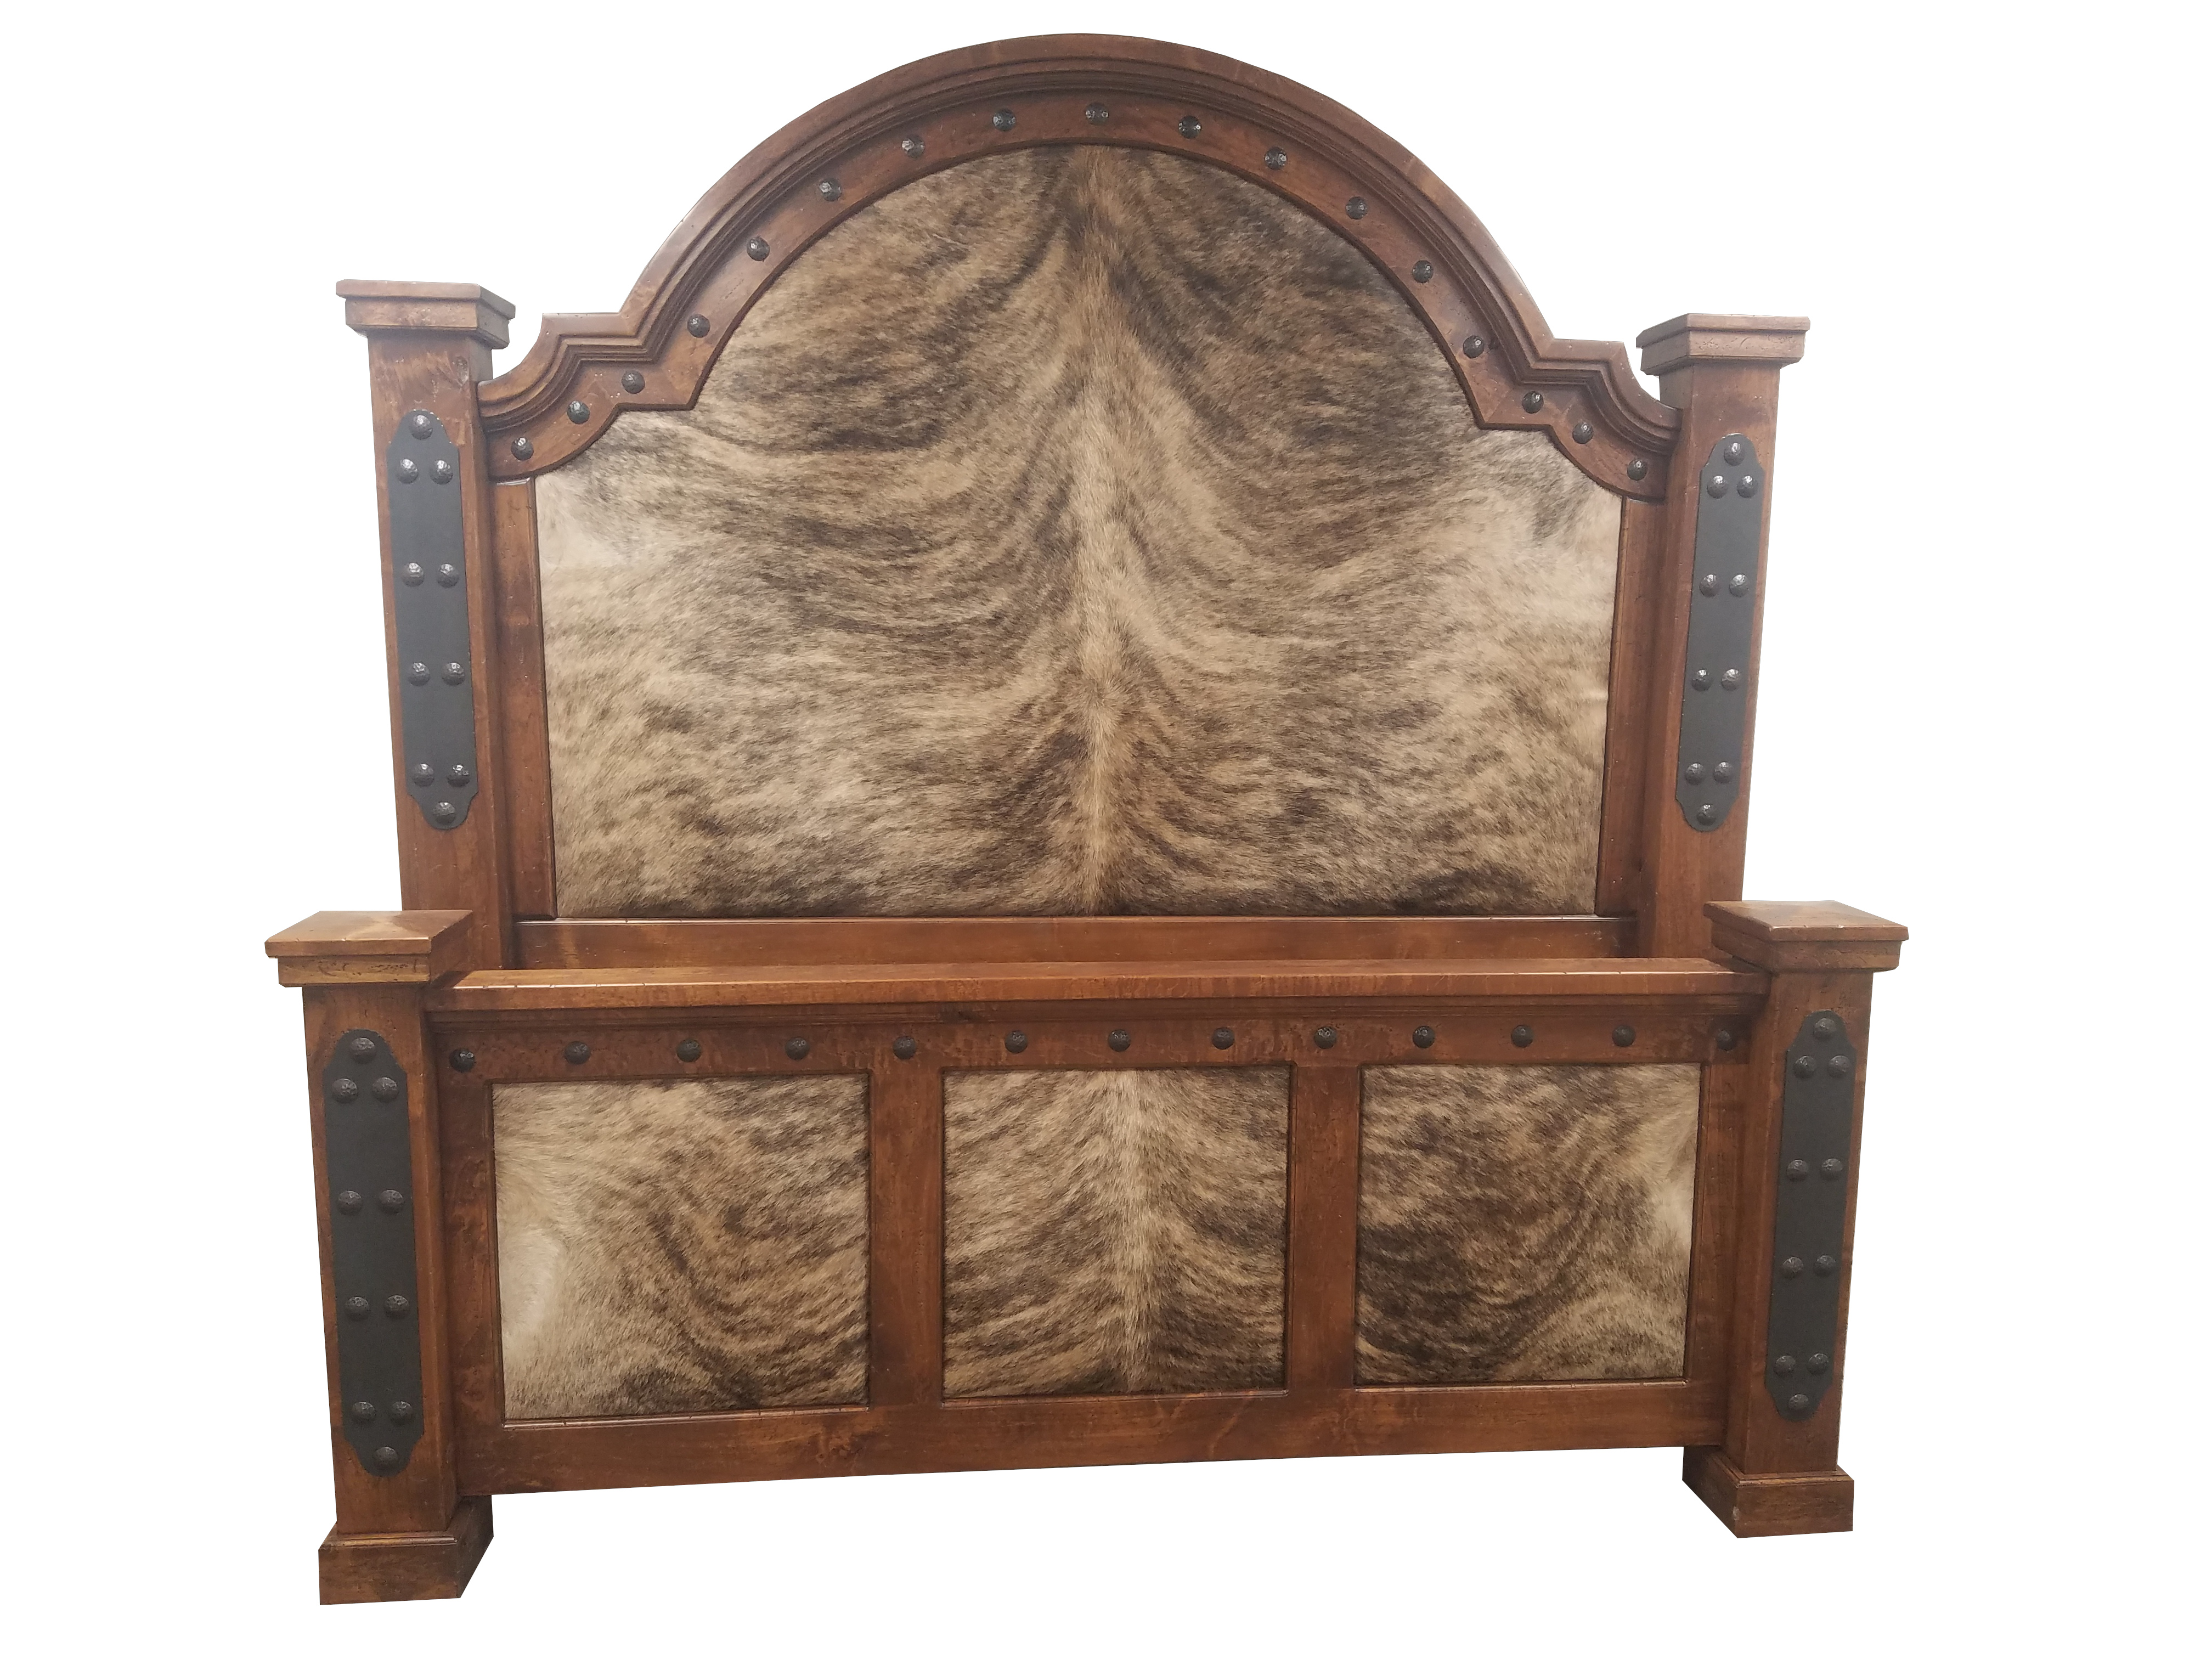 Western bed with cowhide